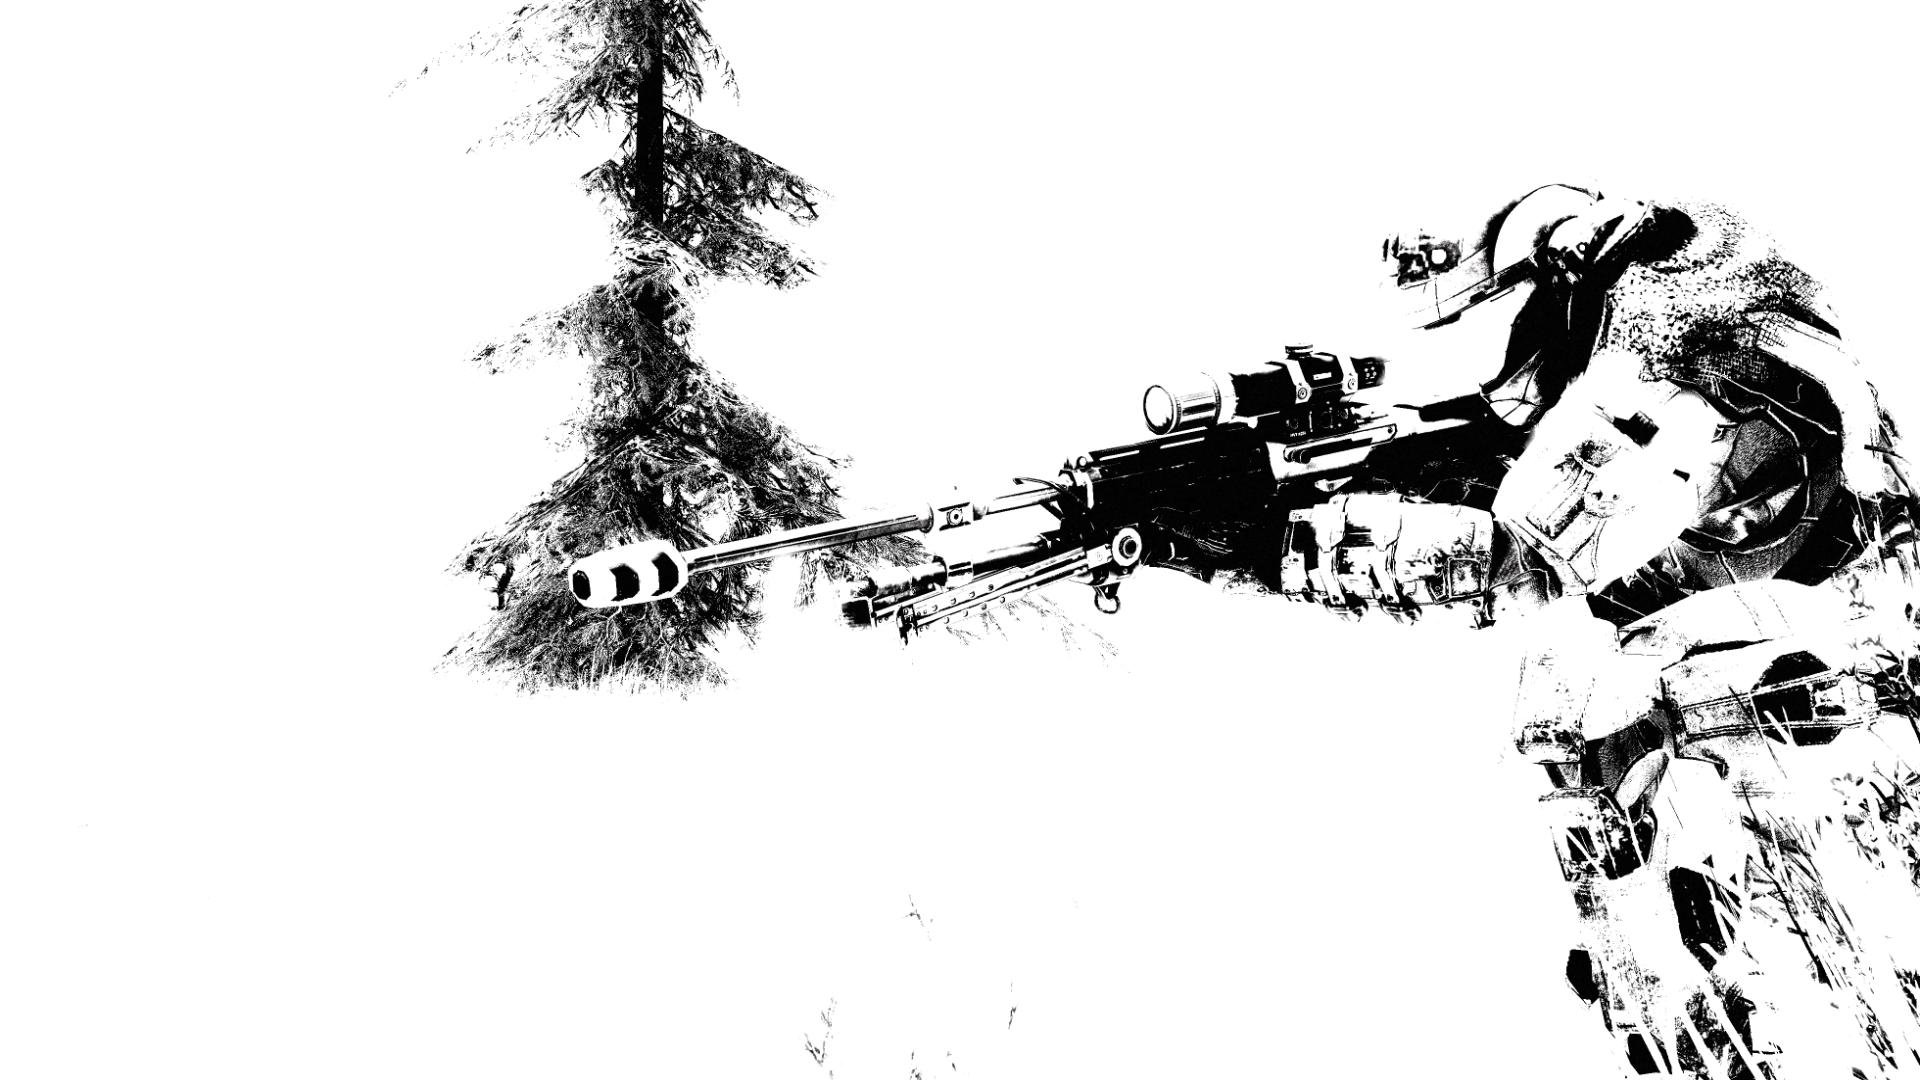 Drawn snipers wallpaper WallpaperUP trees sniper Snow 251493